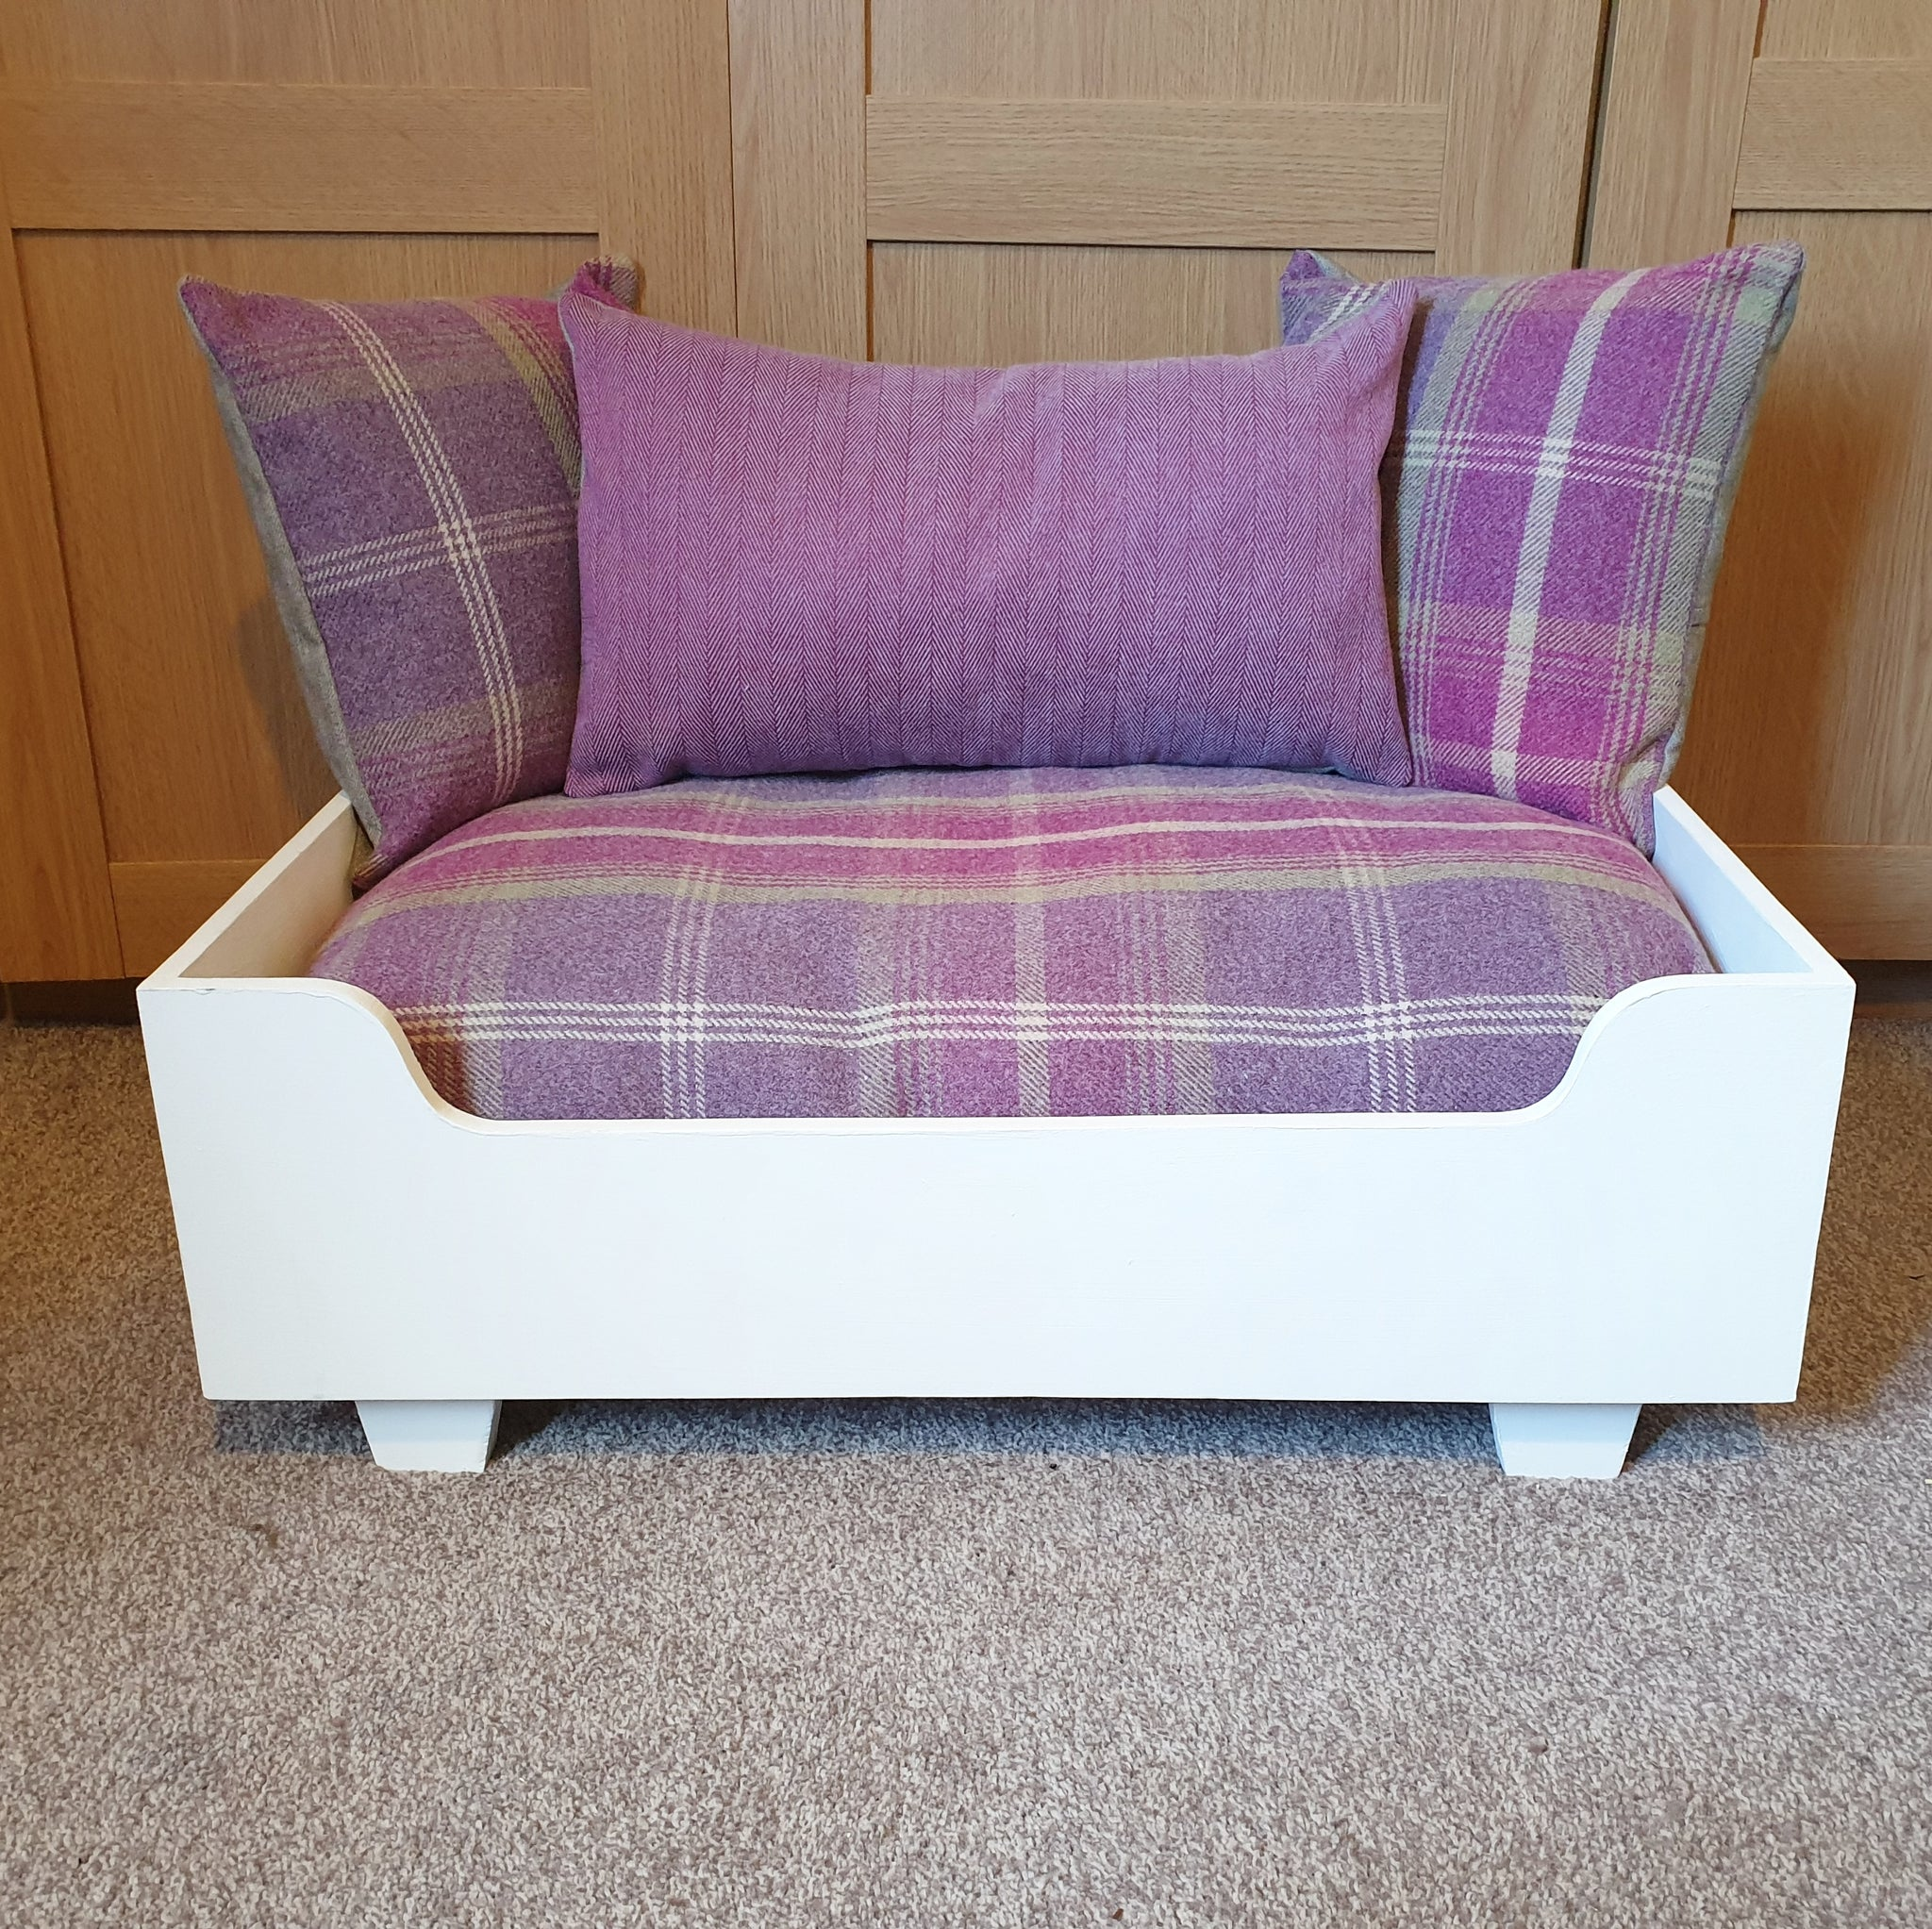 Handmade Dog Bed - Cream Frame with Pink Tartan Mattress and Pillows + pink herringbone centre pillow